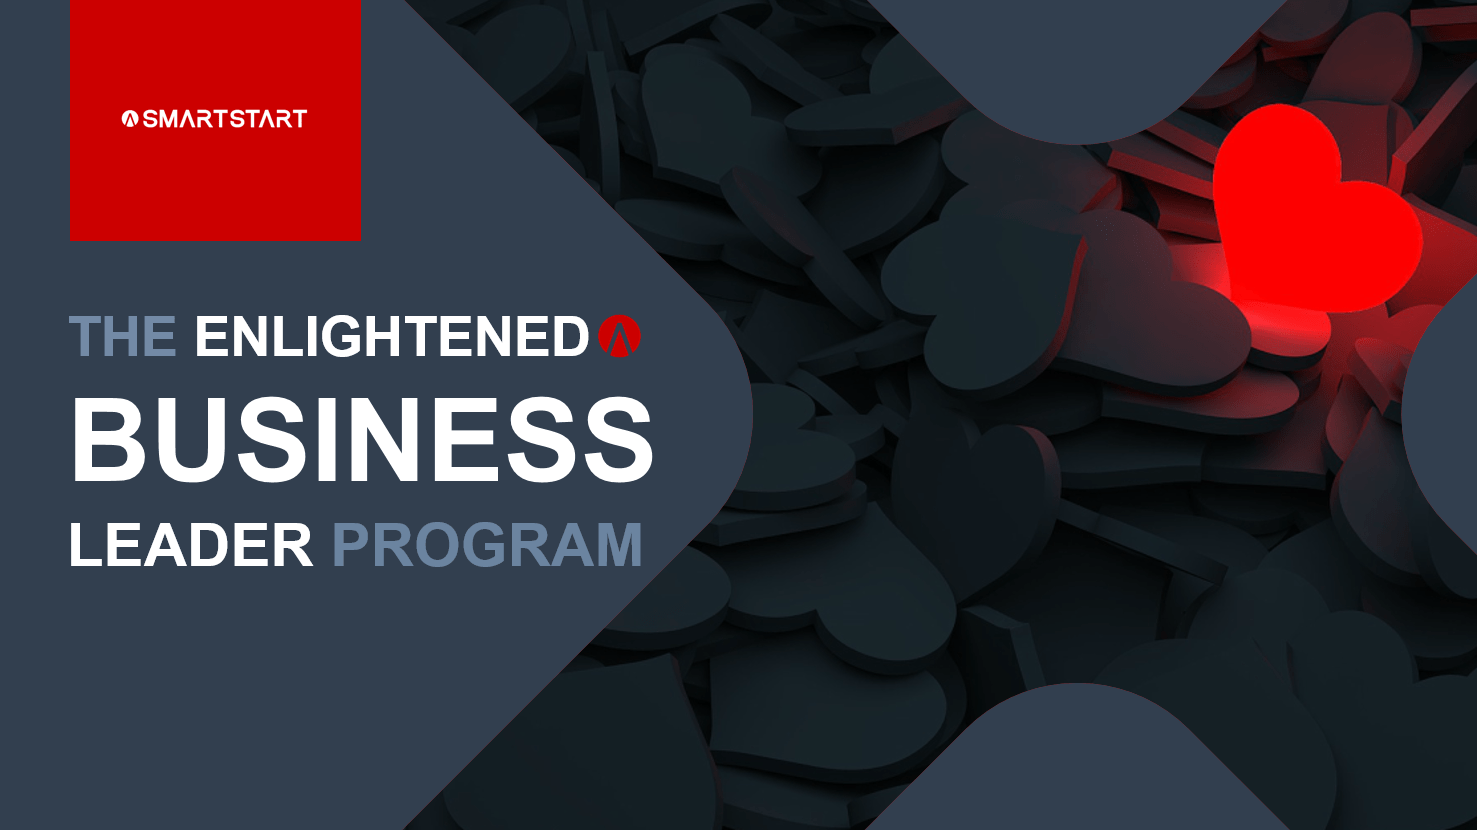 The Enlightened Business Leader Program by SMARTSTART